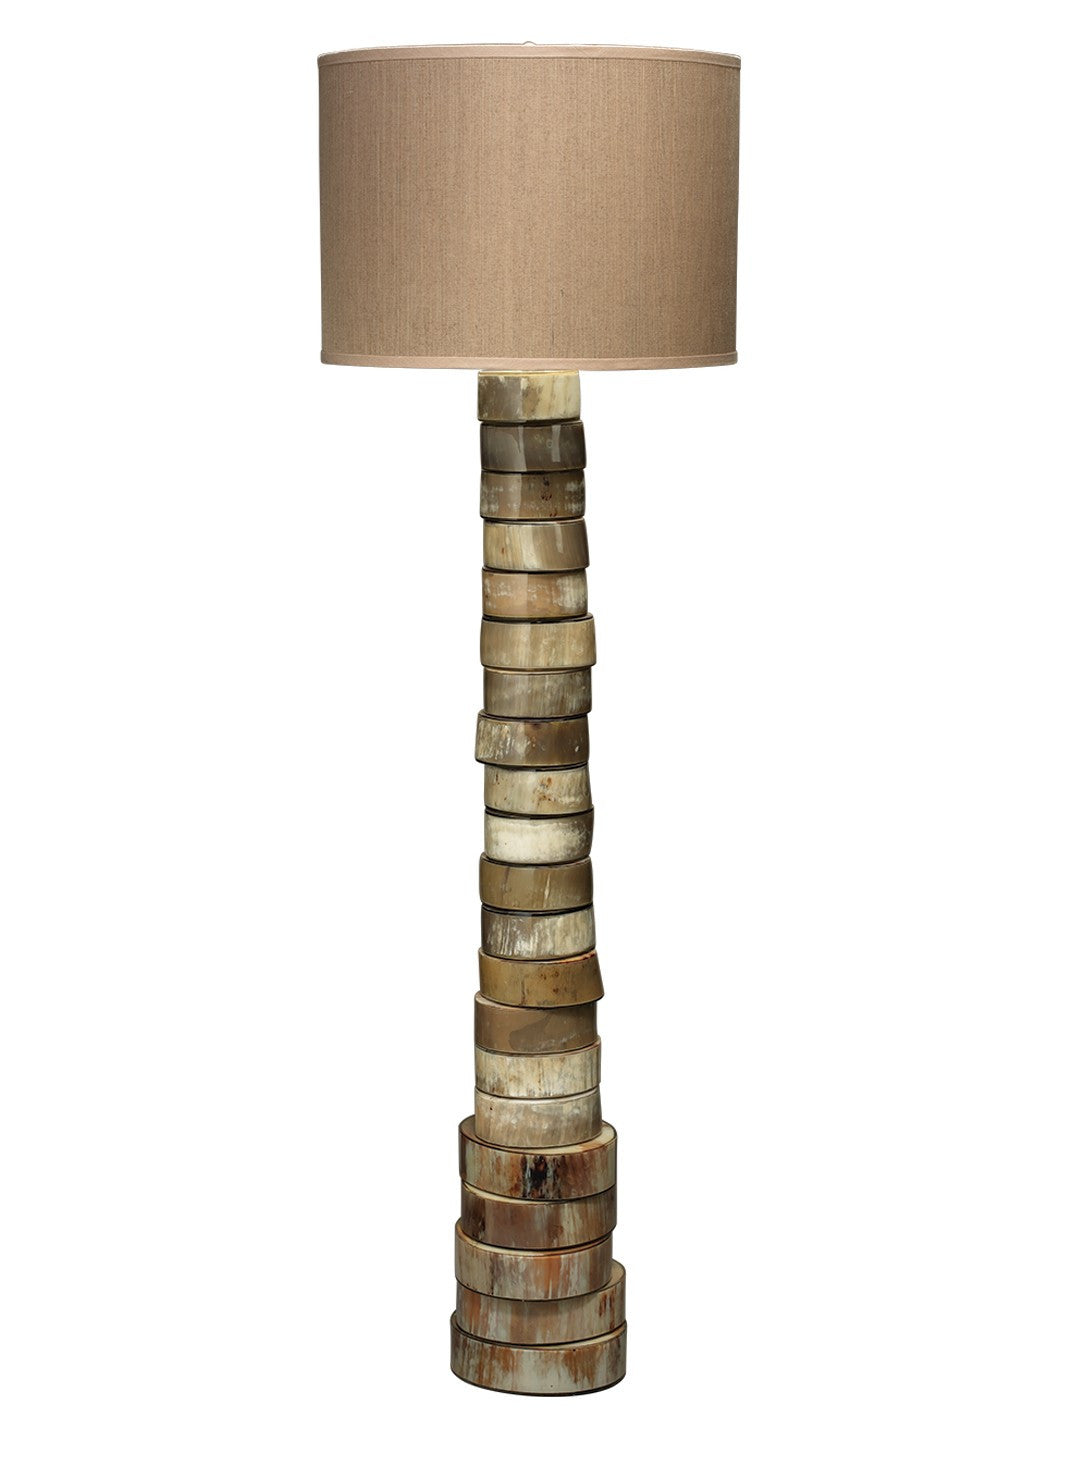 Jamie Young stacked horn floor lamp 1-1309